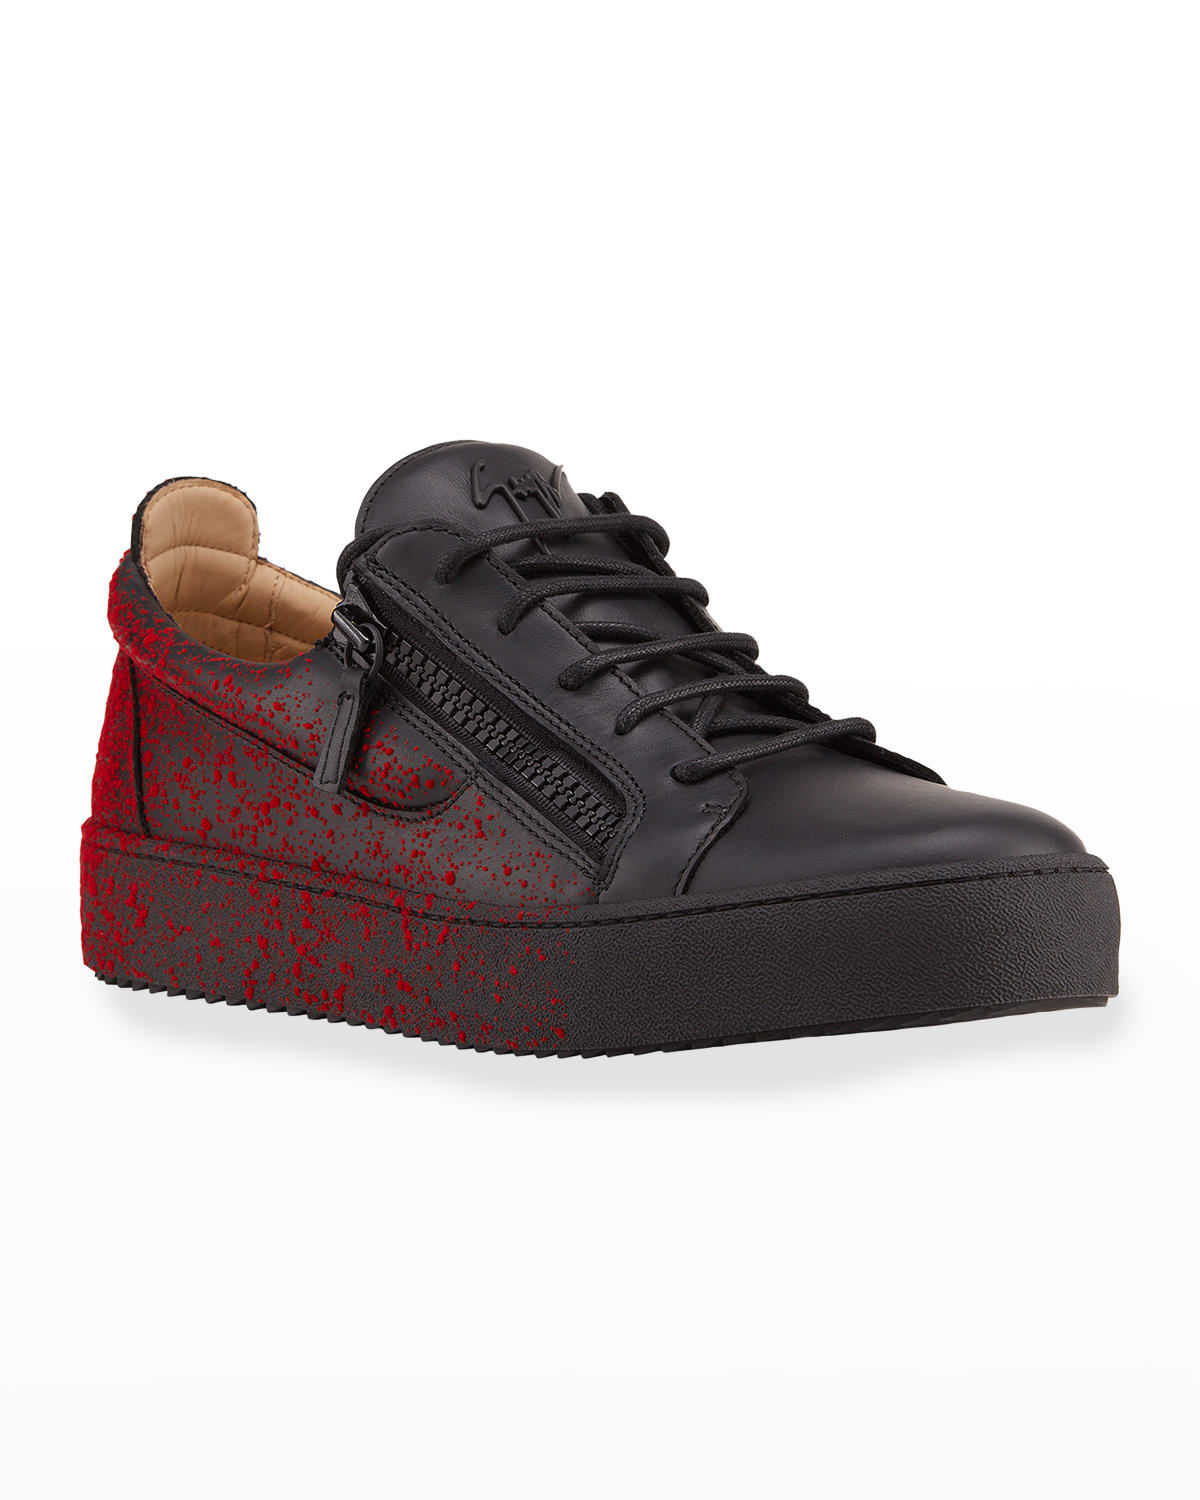 Men's Two-Tone Paint Splattered Leather Sneakers